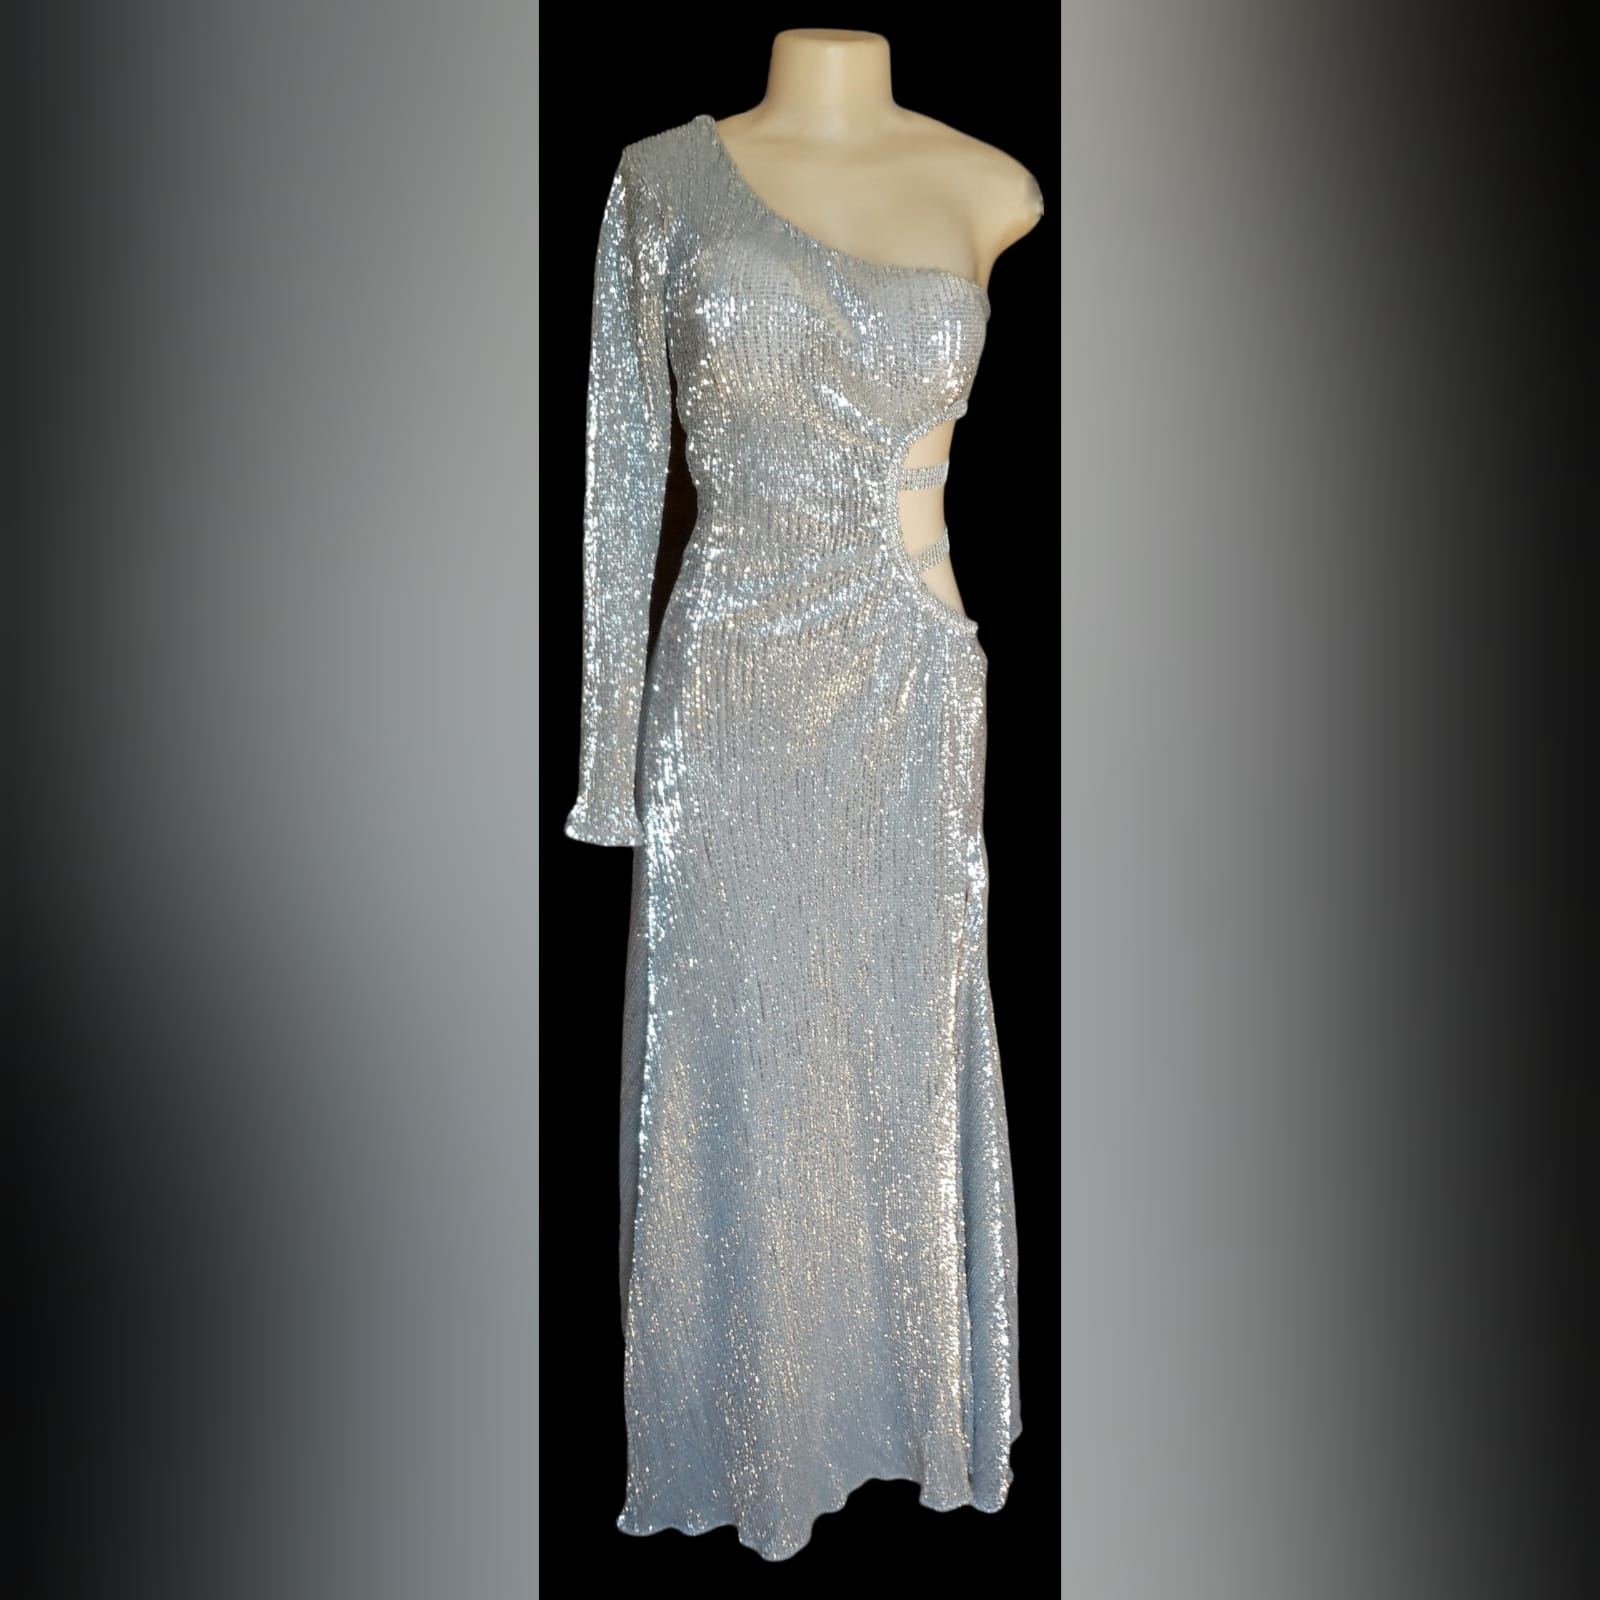 Silver sequins long sexy end year party dress 4 silver sequins long sexy end year party dress with side tummy and back opening detailed with straps, one sleeve and a train.